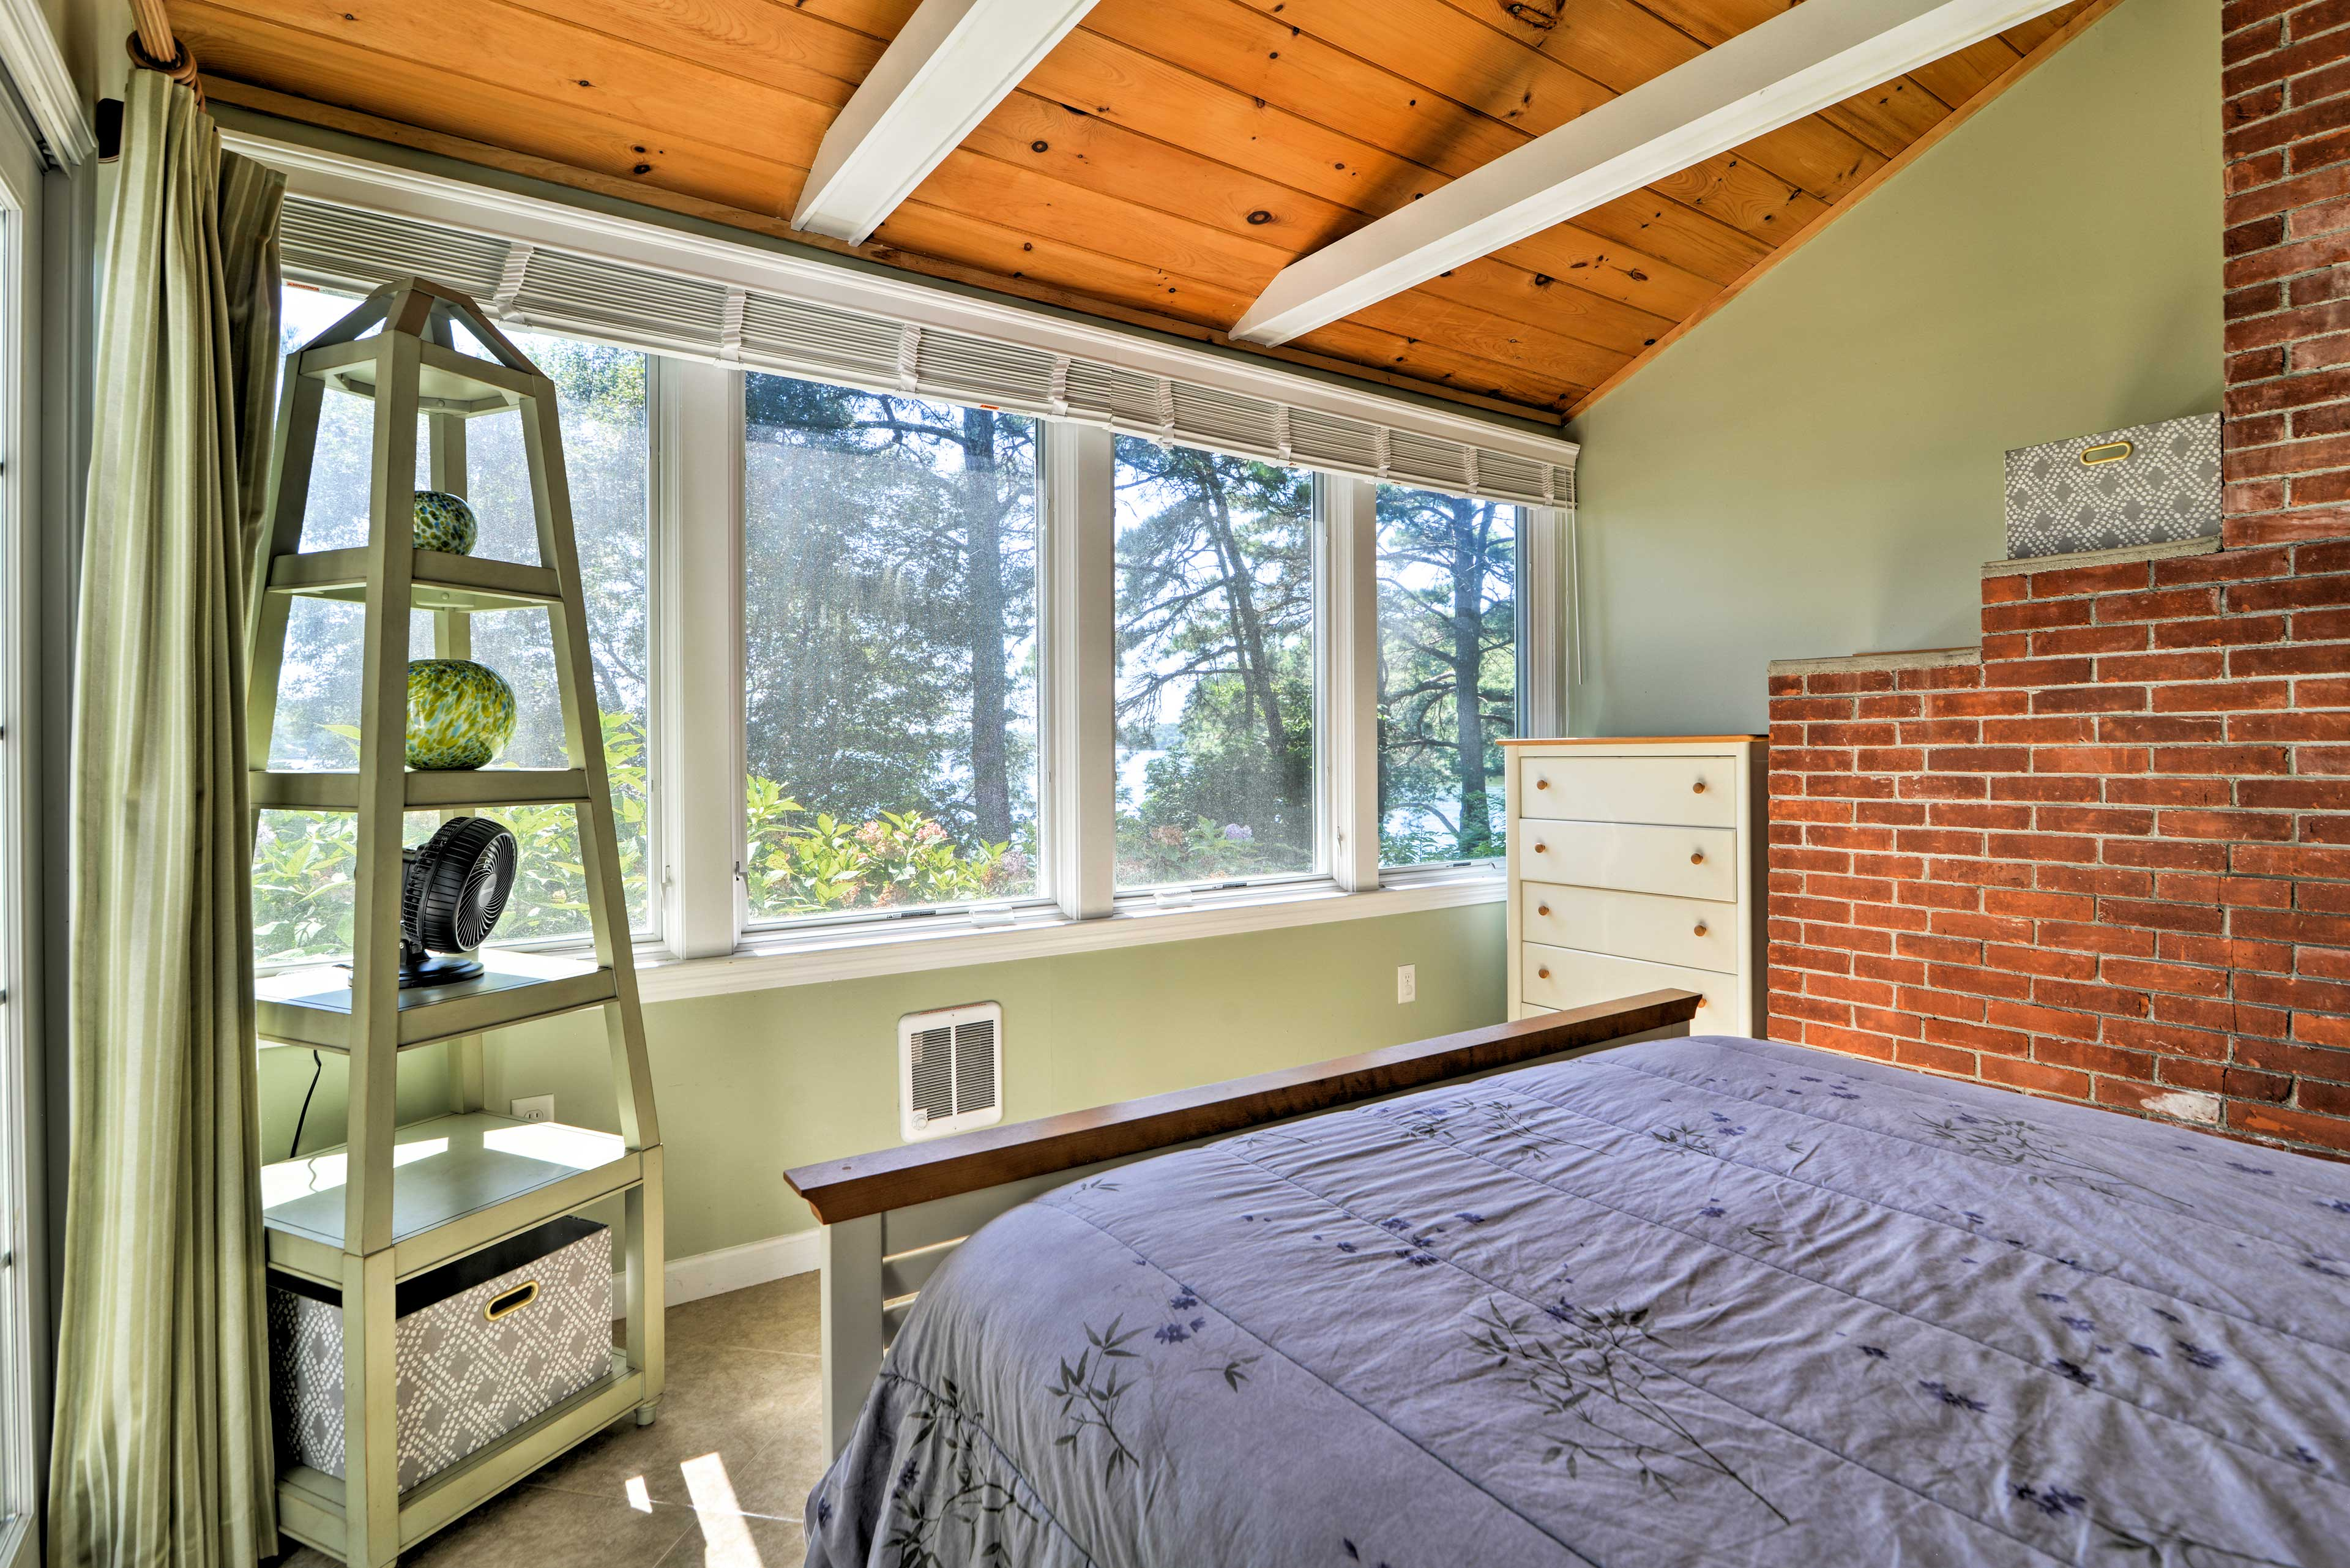 Enjoy wooded views from the comfort of bed!